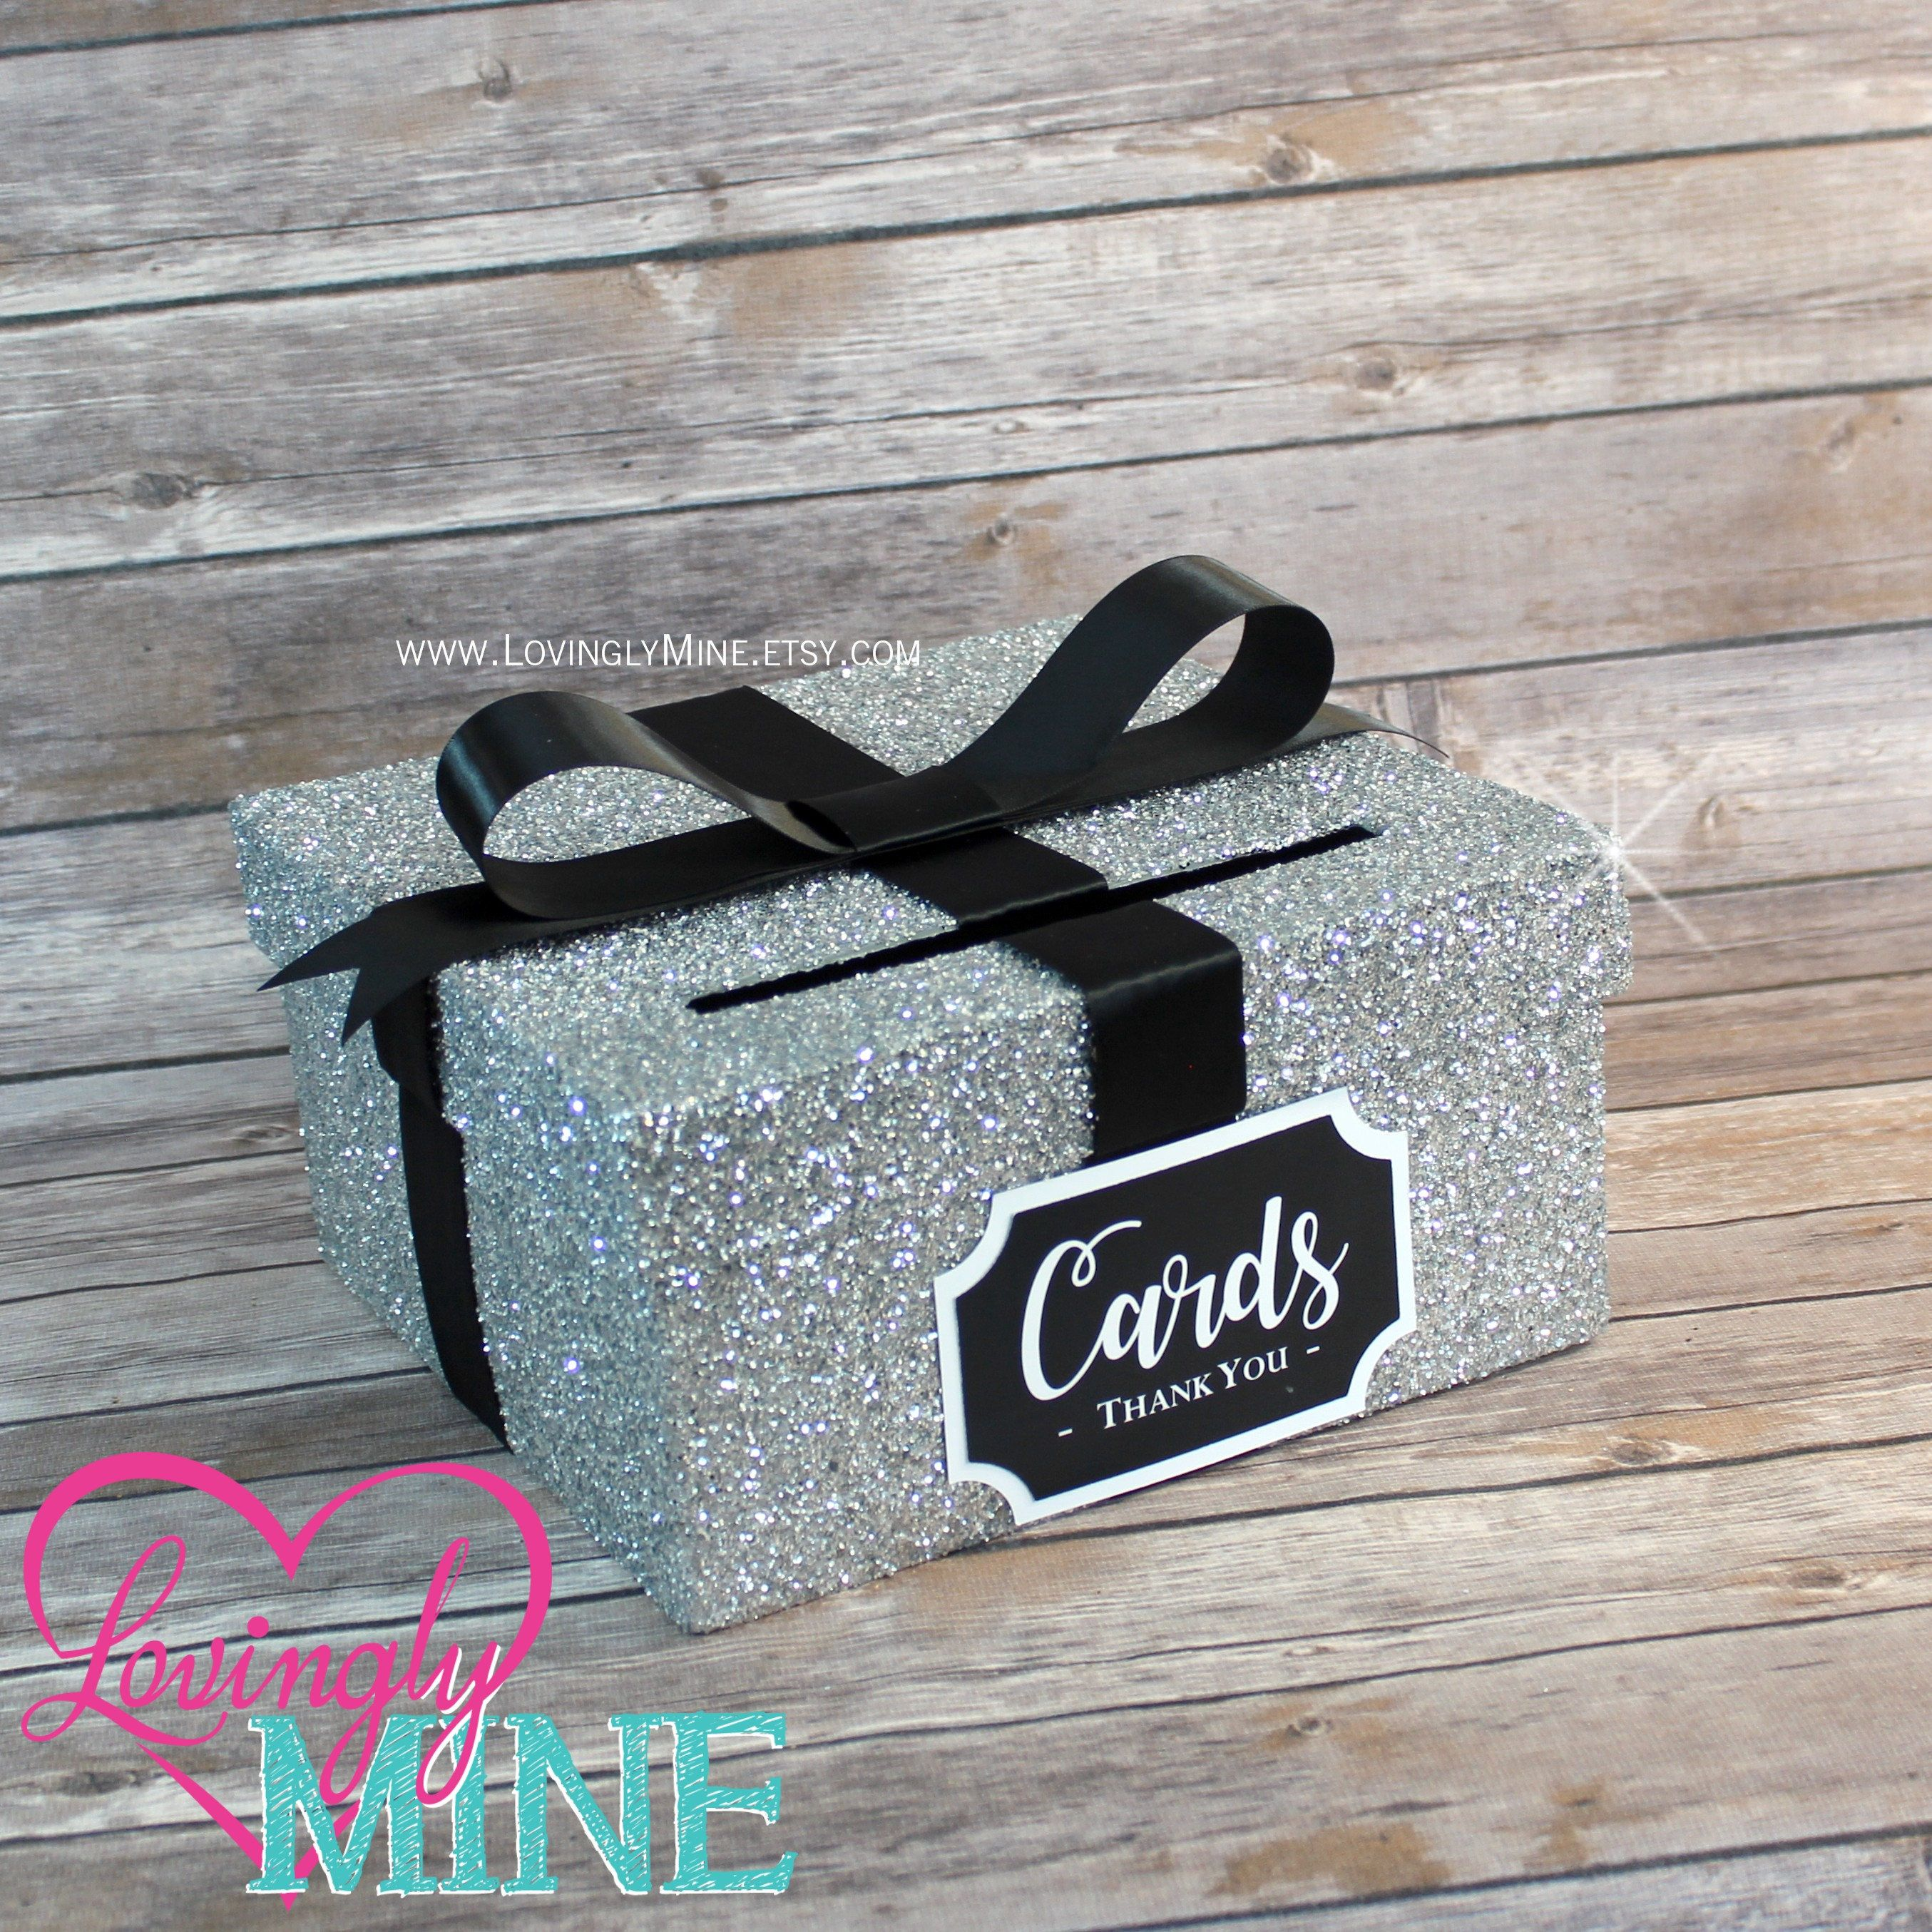 Card box glitter silver and black gift money box for any event card box glitter silver and black gift money box for any event baby shower wedding bridal shower birthday party sweet 16 bookmarktalkfo Image collections